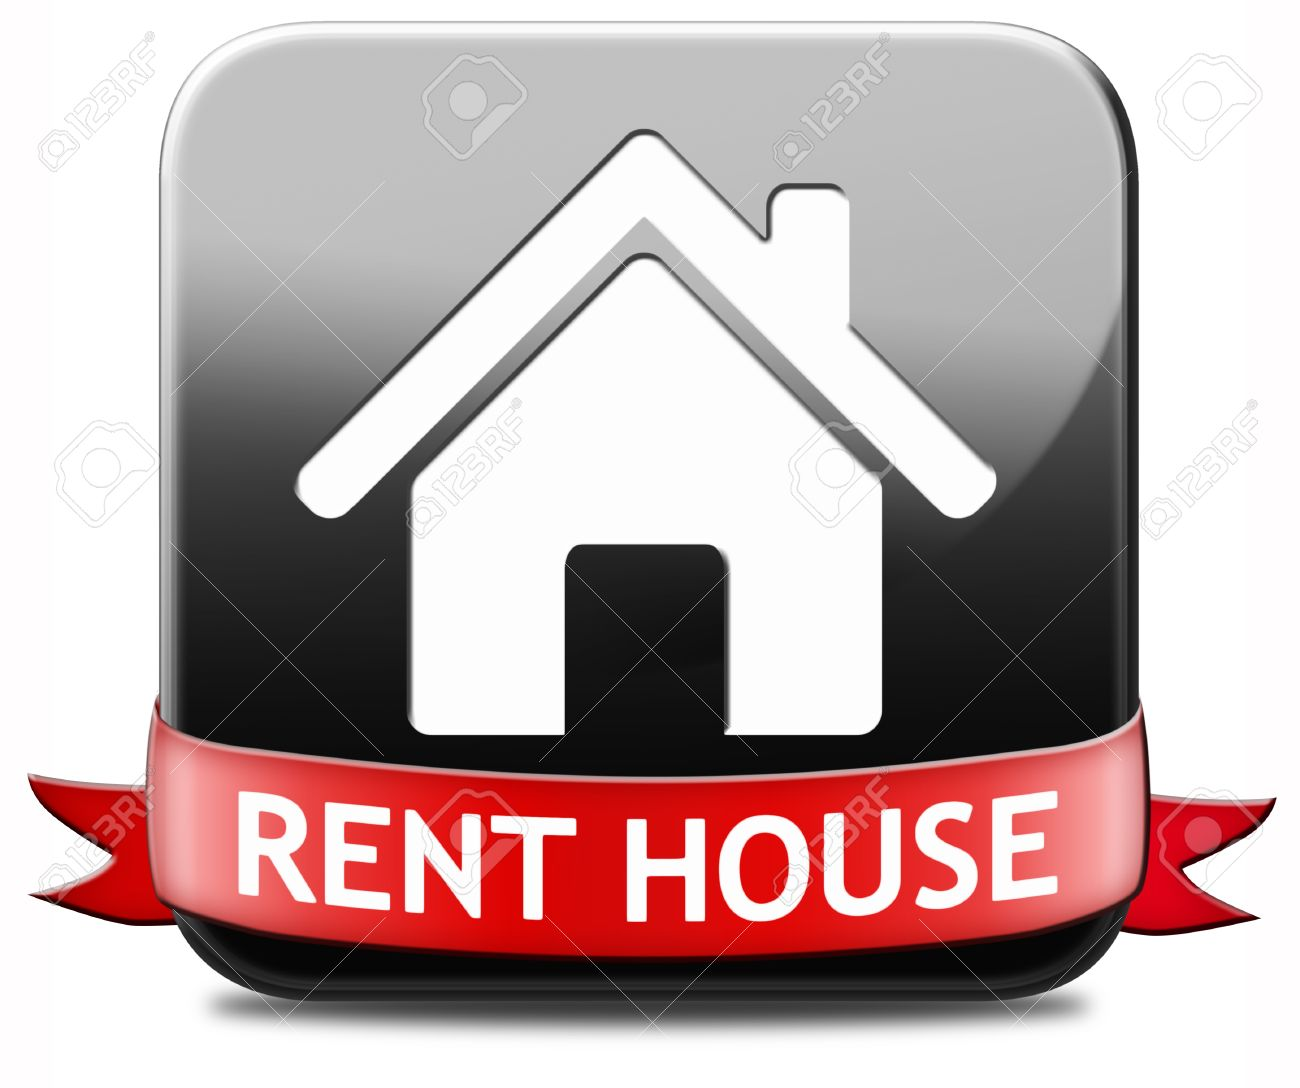 Renting A Apartment house for rent sign, renting a flat, room apartment or other